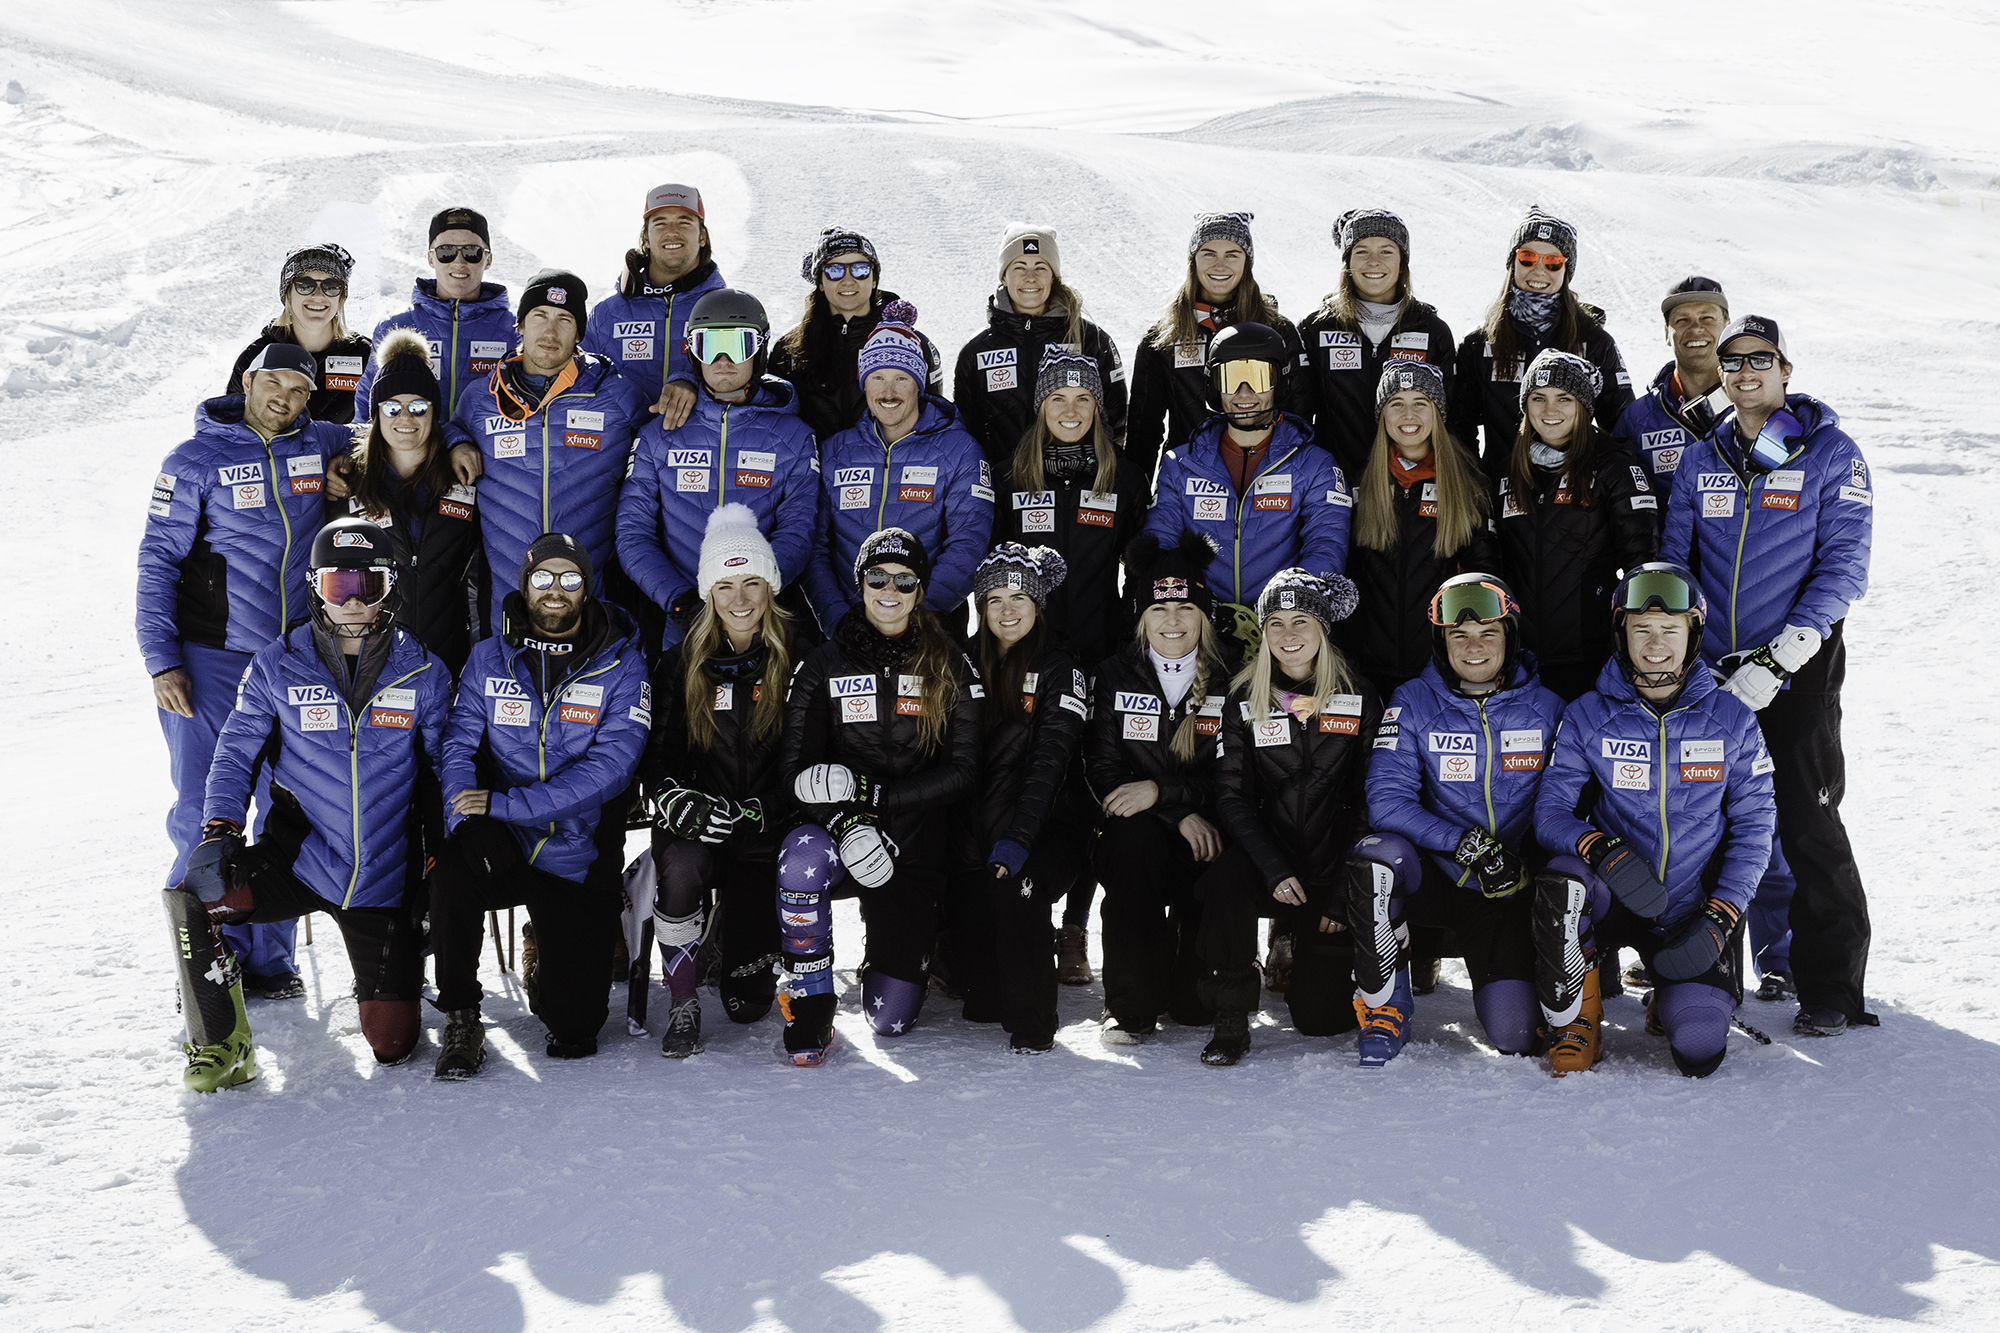 The 2018-19 U.S. Alpine Ski Team (Sarah Brunson - U.S. Ski & Snowboard)